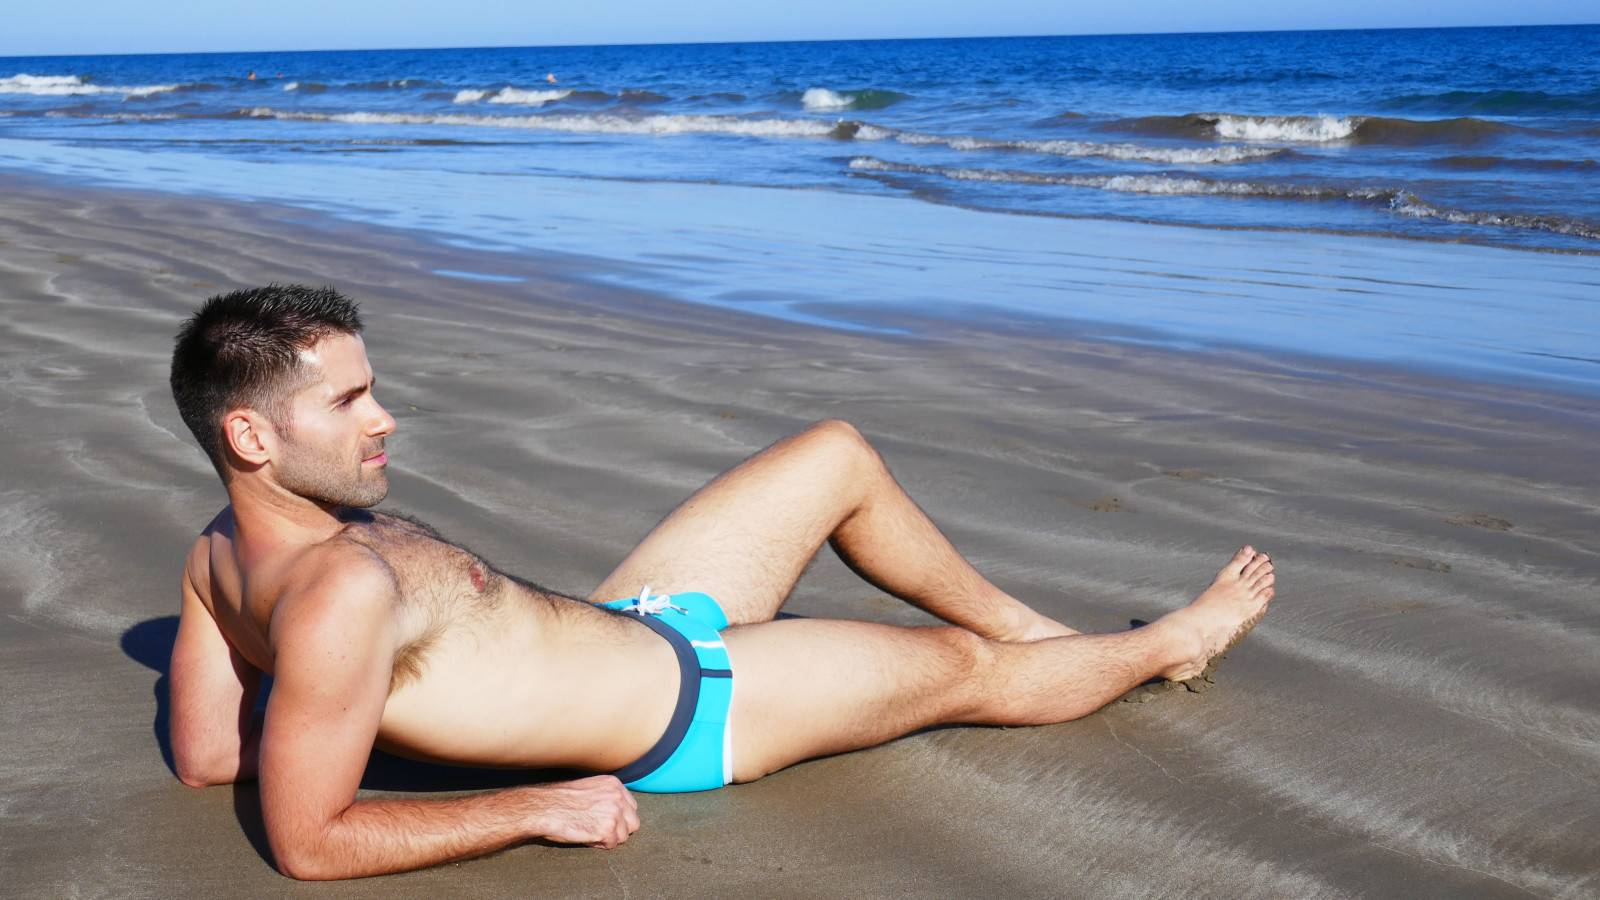 Sebastien from Nomadic Boys chilling on a gay beach in Gran Canaria